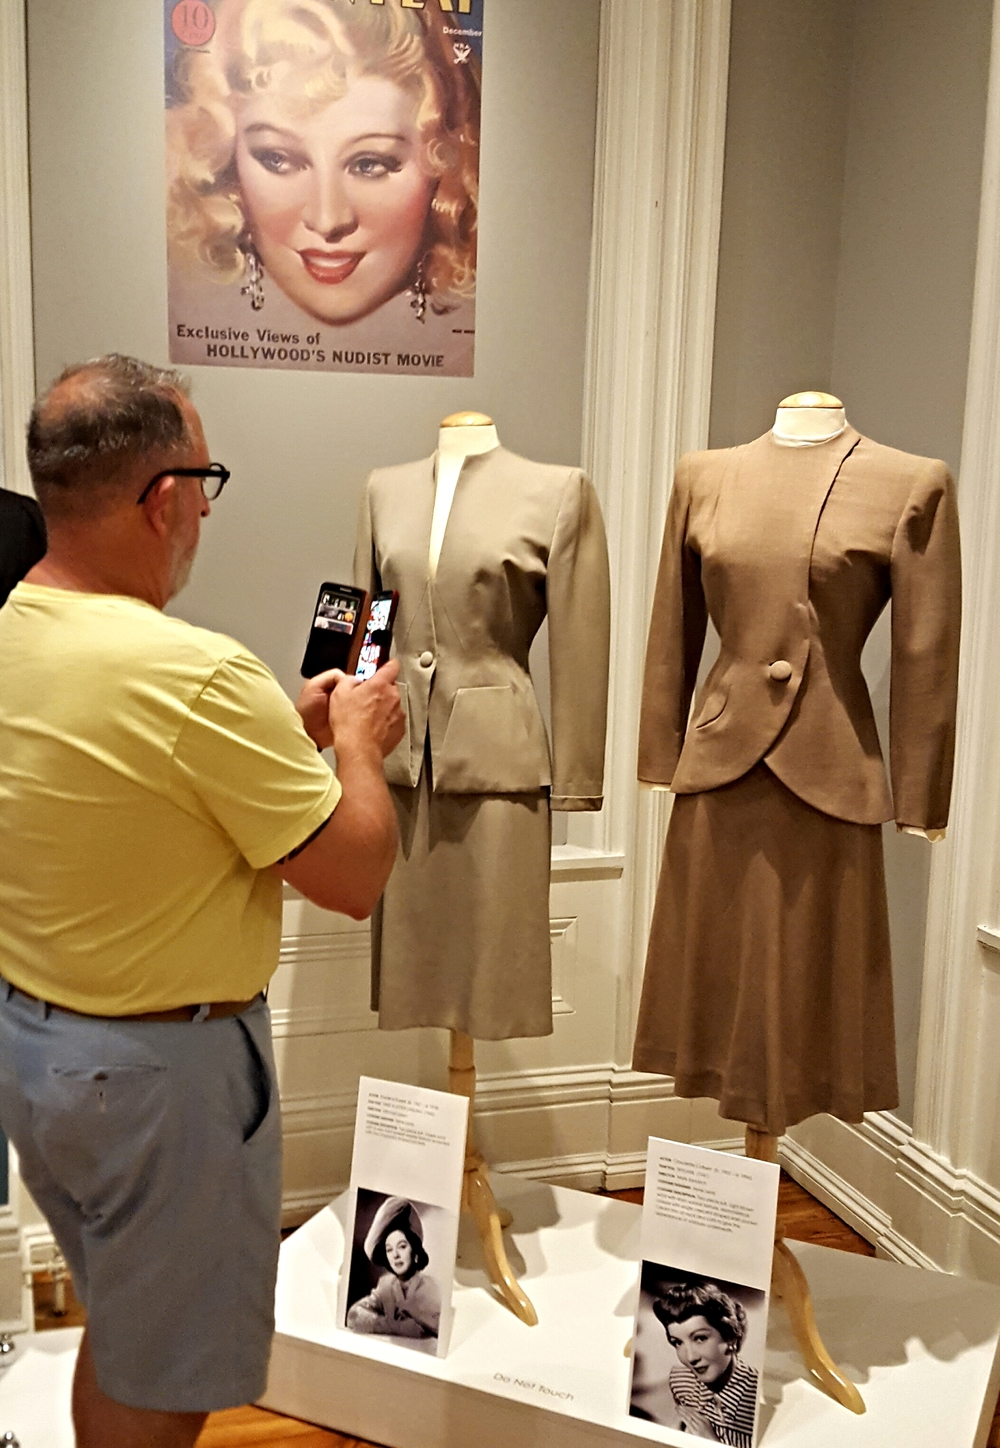 Actresses suits by designer Irene Lentz - who was a protege of Edith Head.